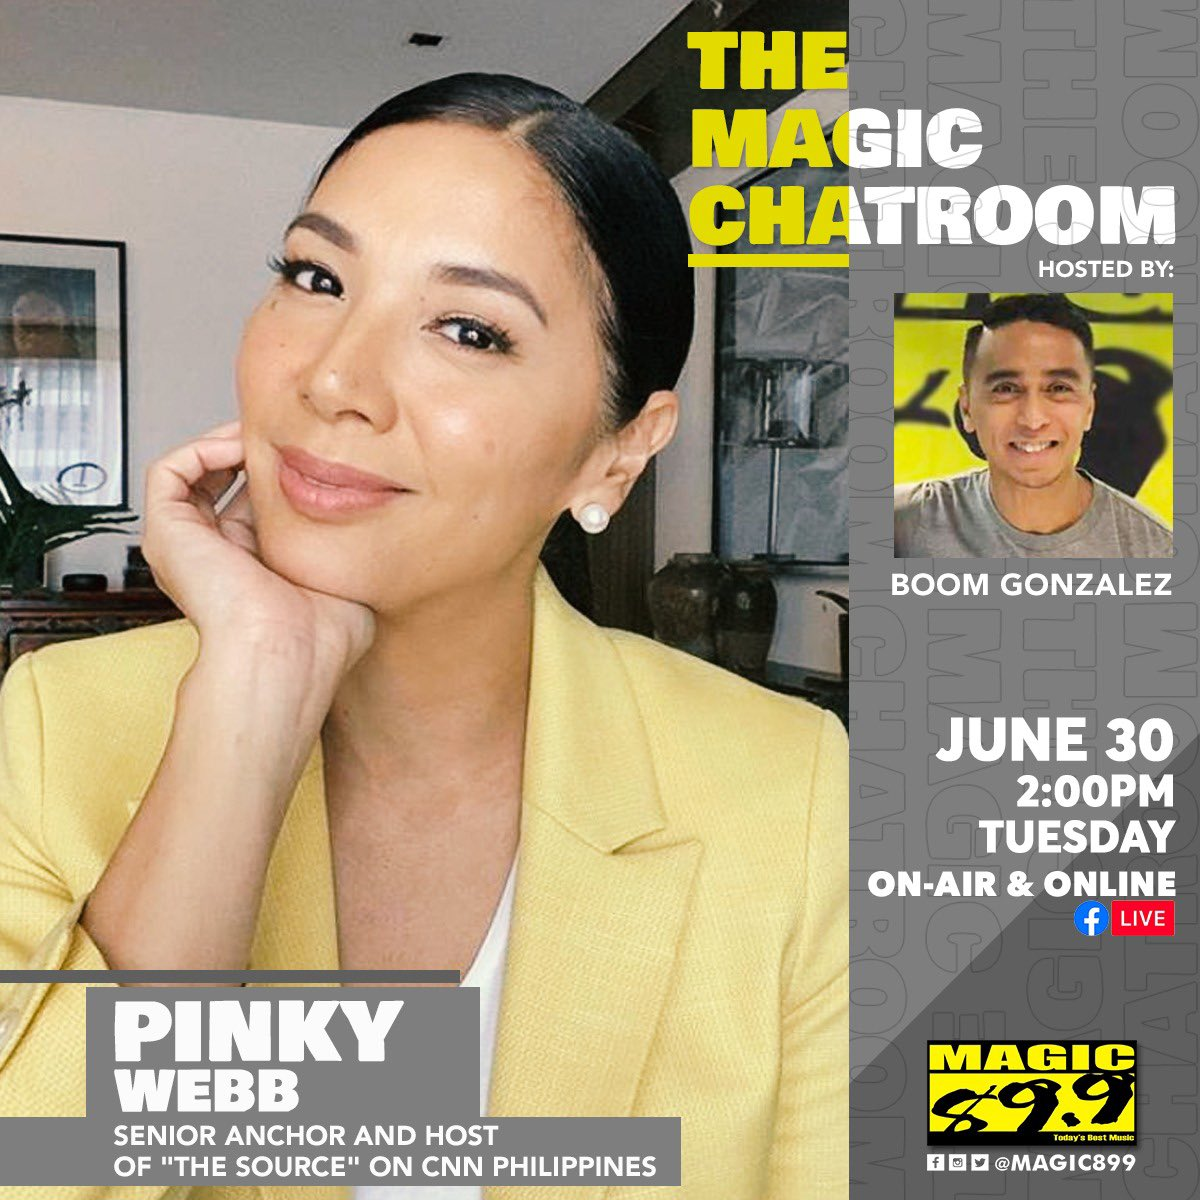 Dont forget tomorrow on The Chatroom, veteran broadcaster, news anchor and host of THE SOURCE on CNN Philippines, @iampinkywebb enters the chatroom with @gamedaywithboom in her very first radio interview! June 30 at 2pm on-air, on Facebook, Twitch, and Kumu! #TheMagicChatroom